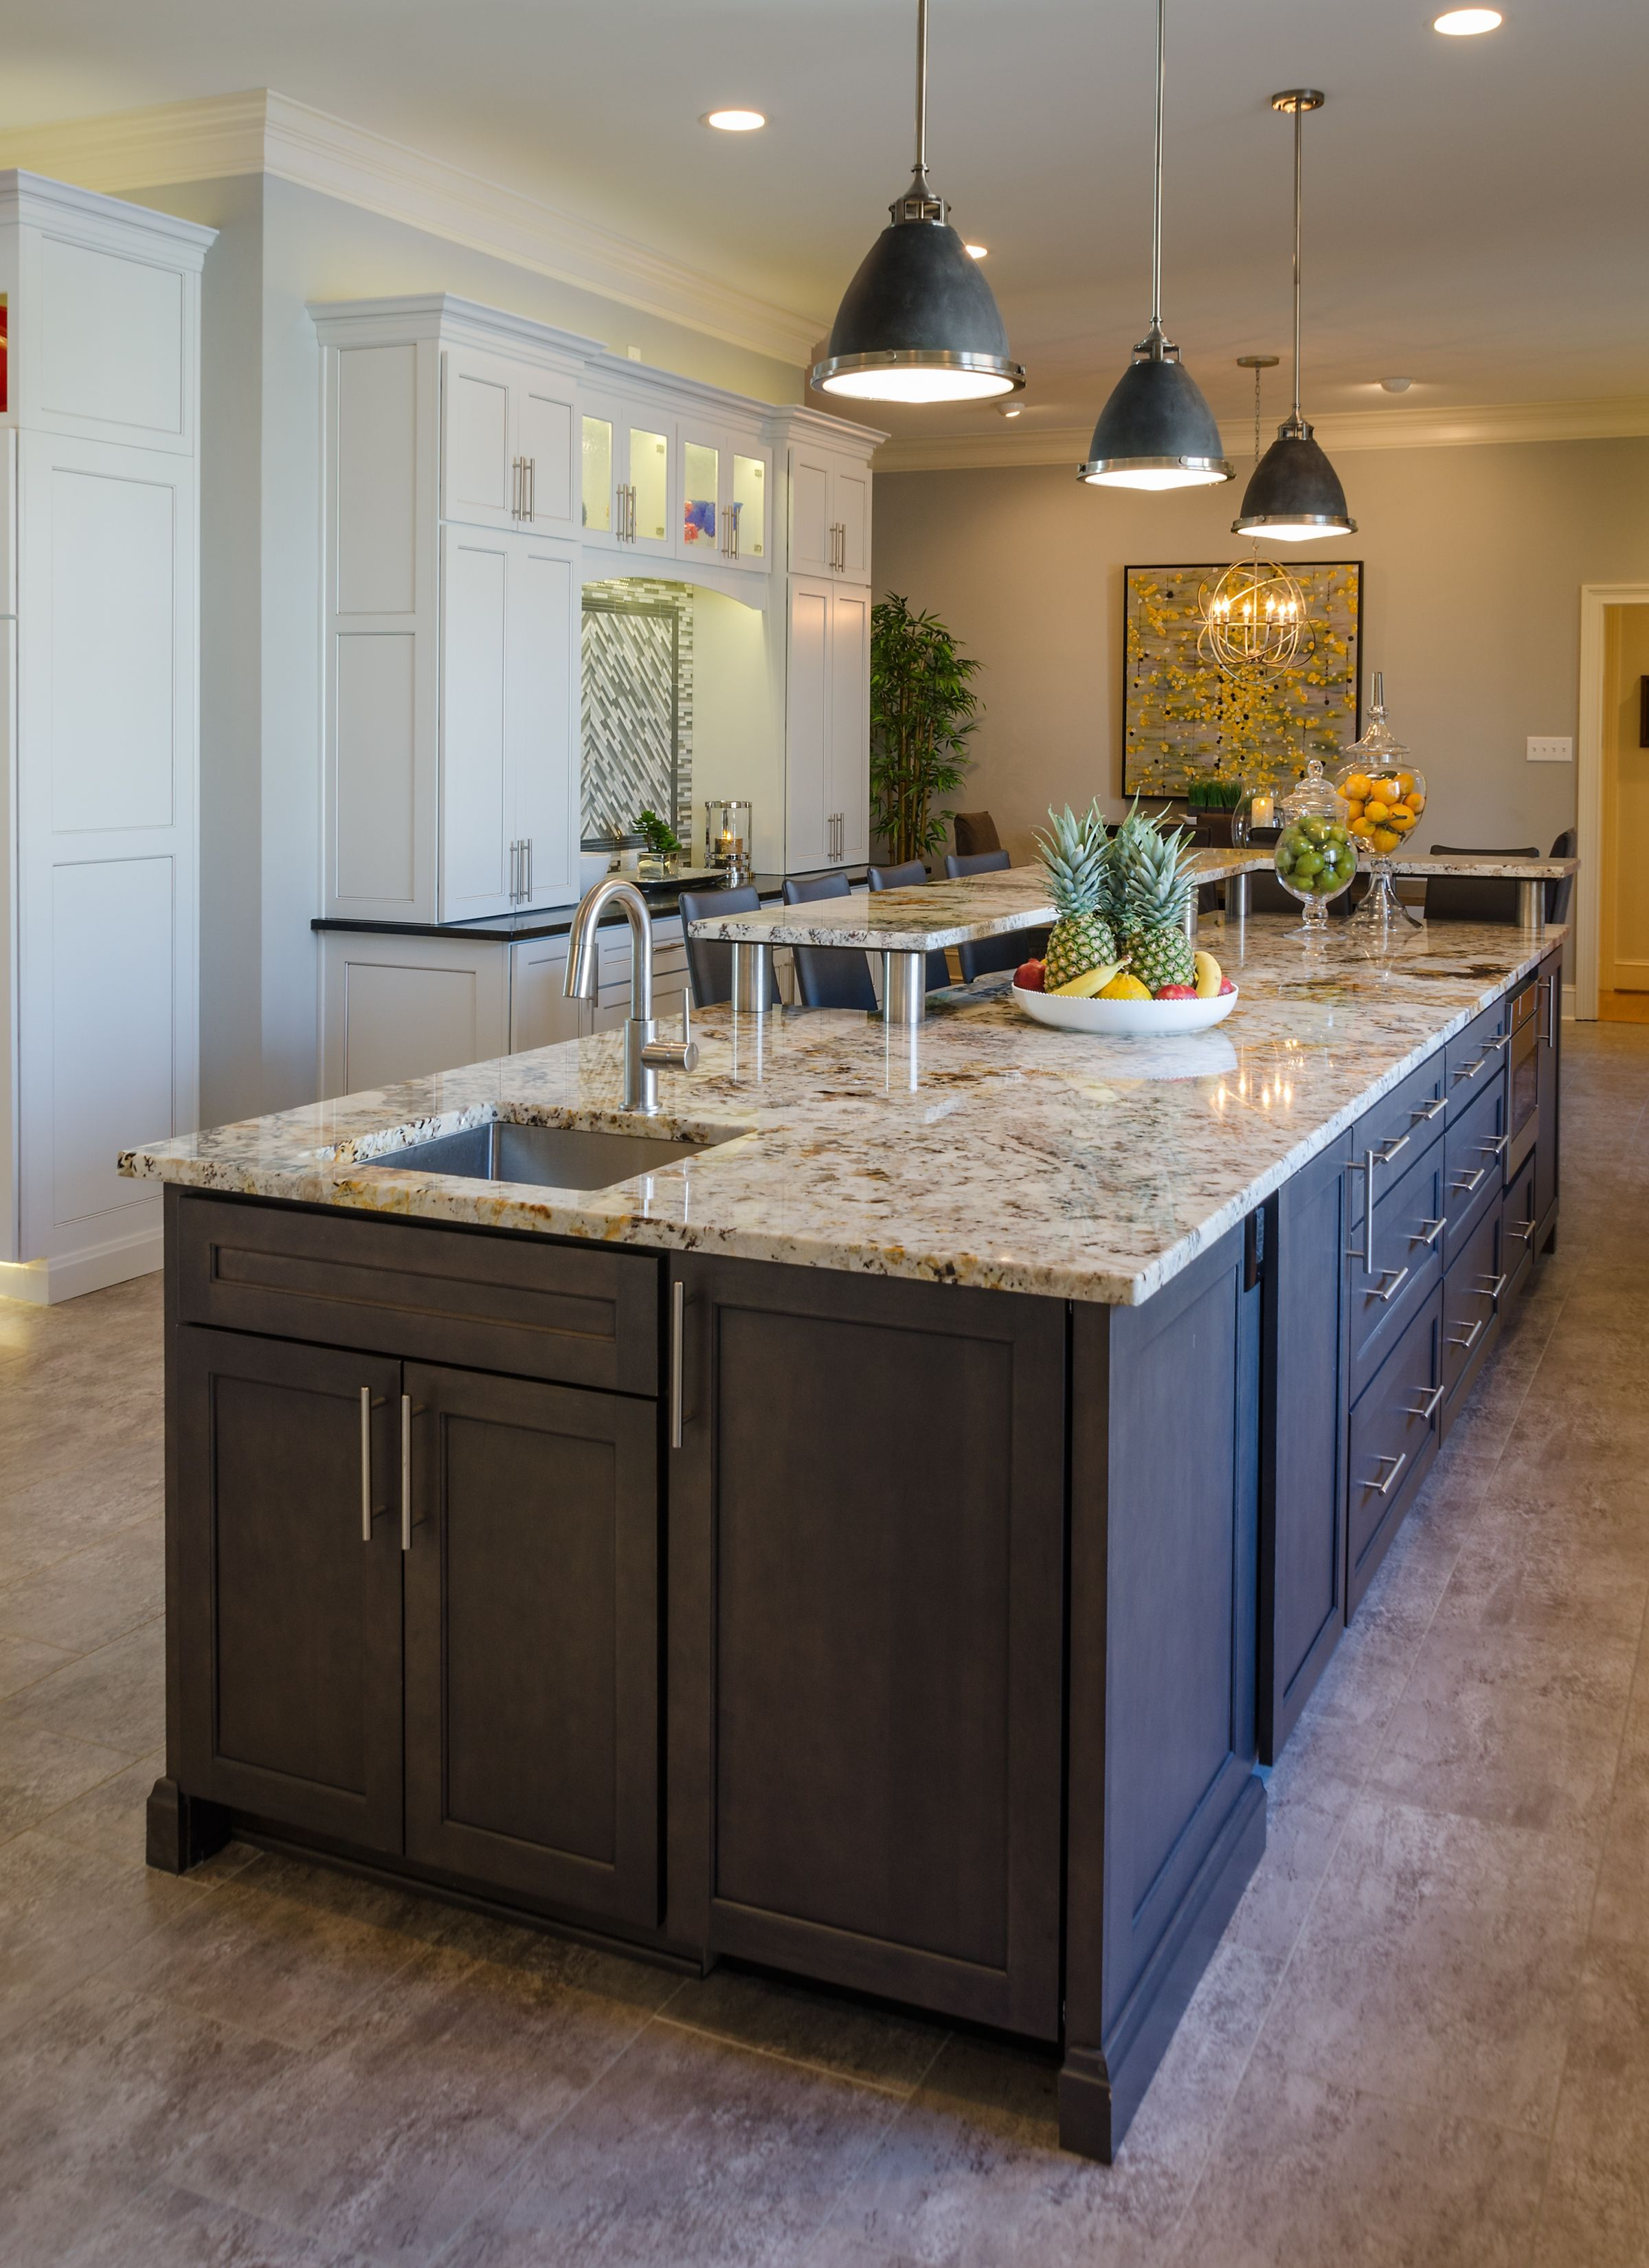 Island In A Sleek And Expansive Transitional Kitchen With Plenty Of Storage And Space For A Chef Or Tw Home Kitchens Kitchen Bathroom Remodel Home Remodeling